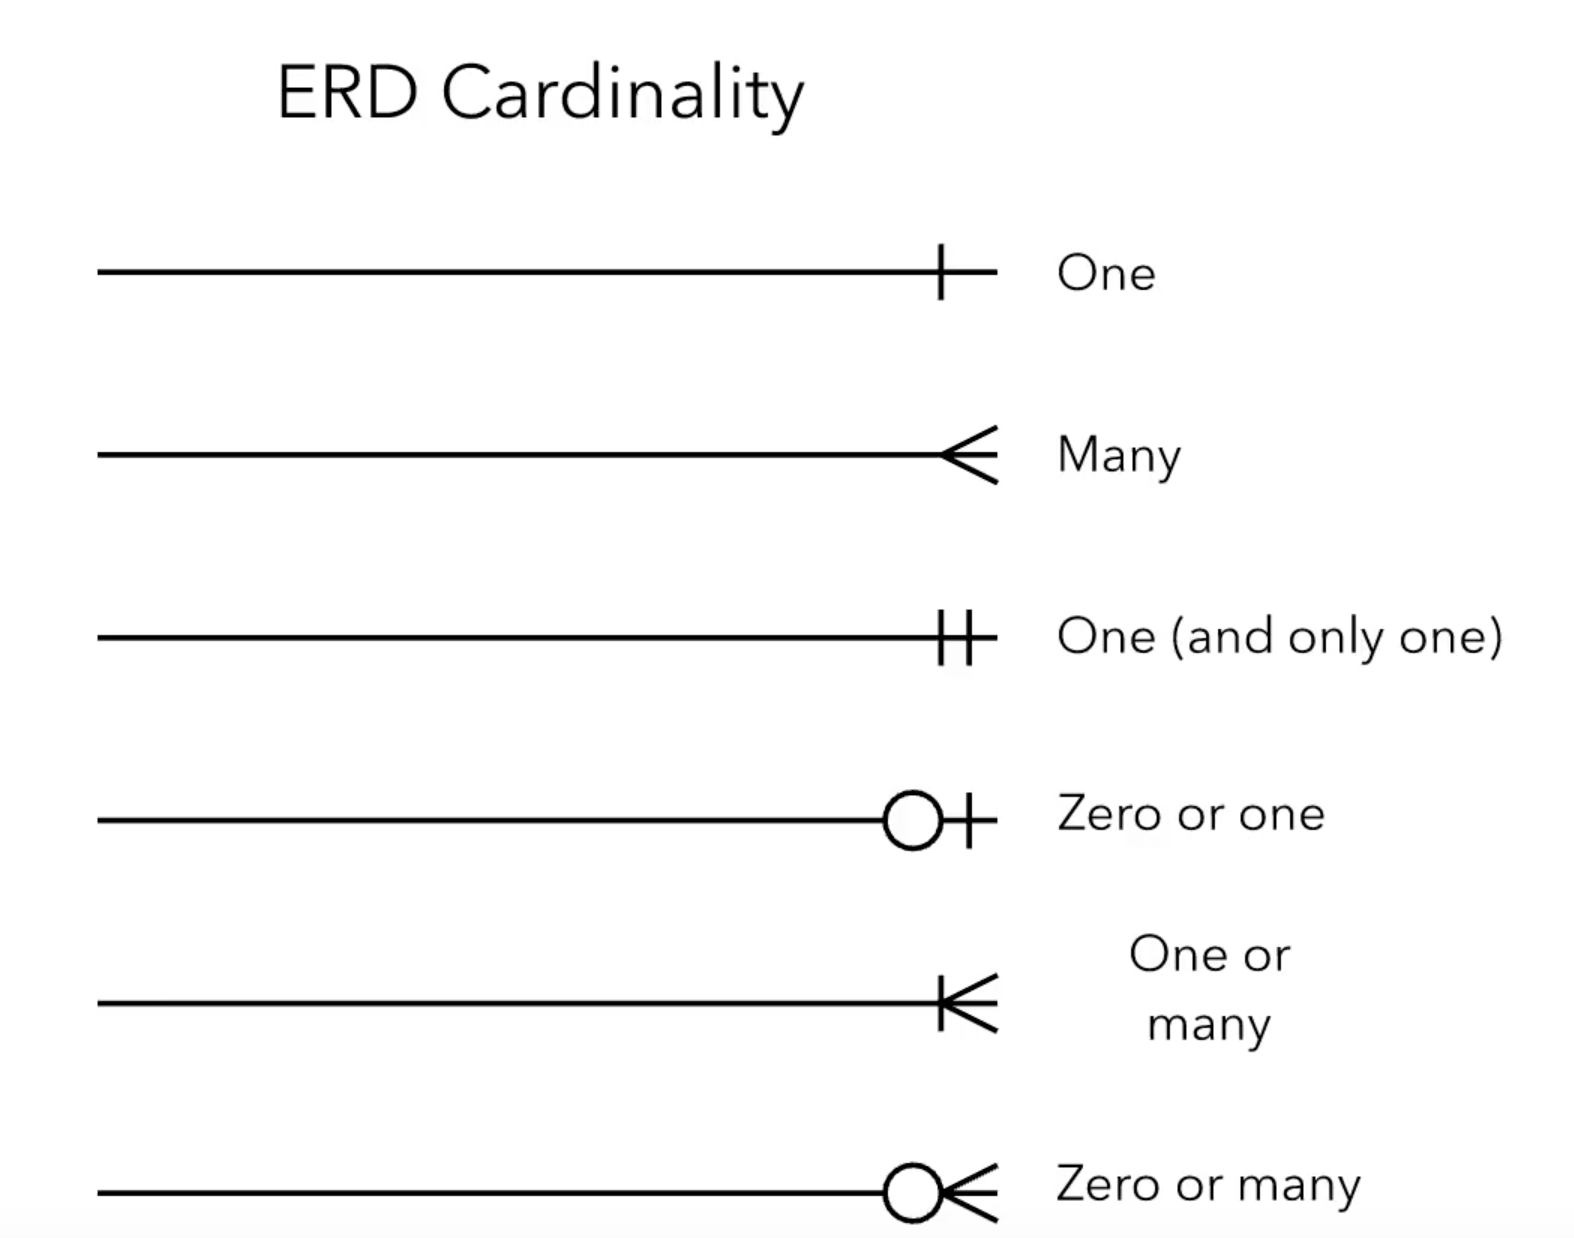 Er Diagram - Are The Relations And Cardinalities Correct